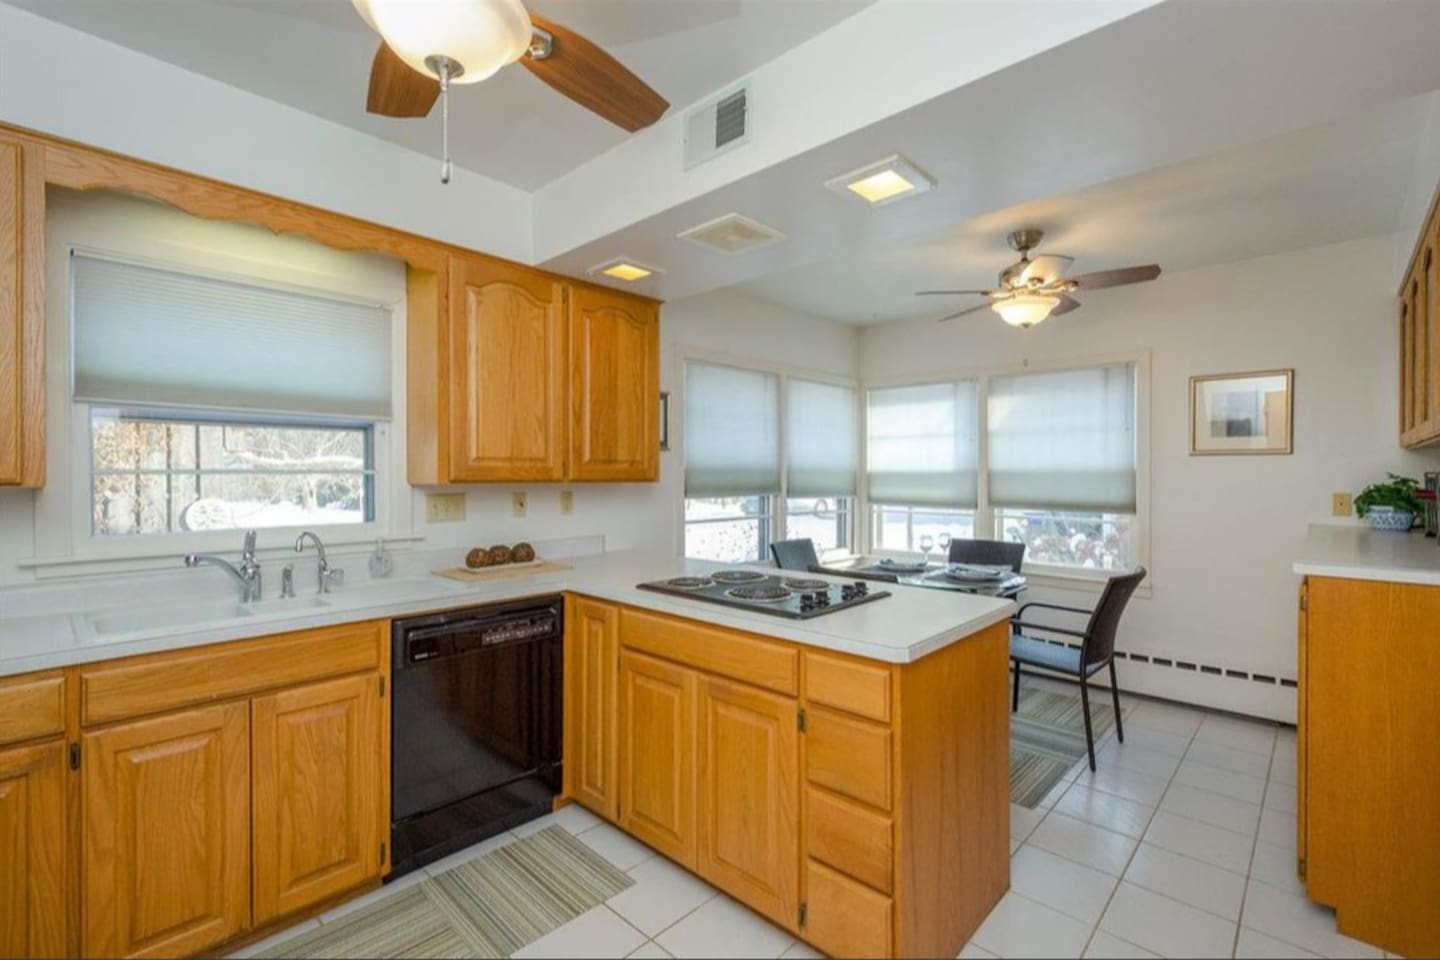 bright and sunny kitchen with dishwasher